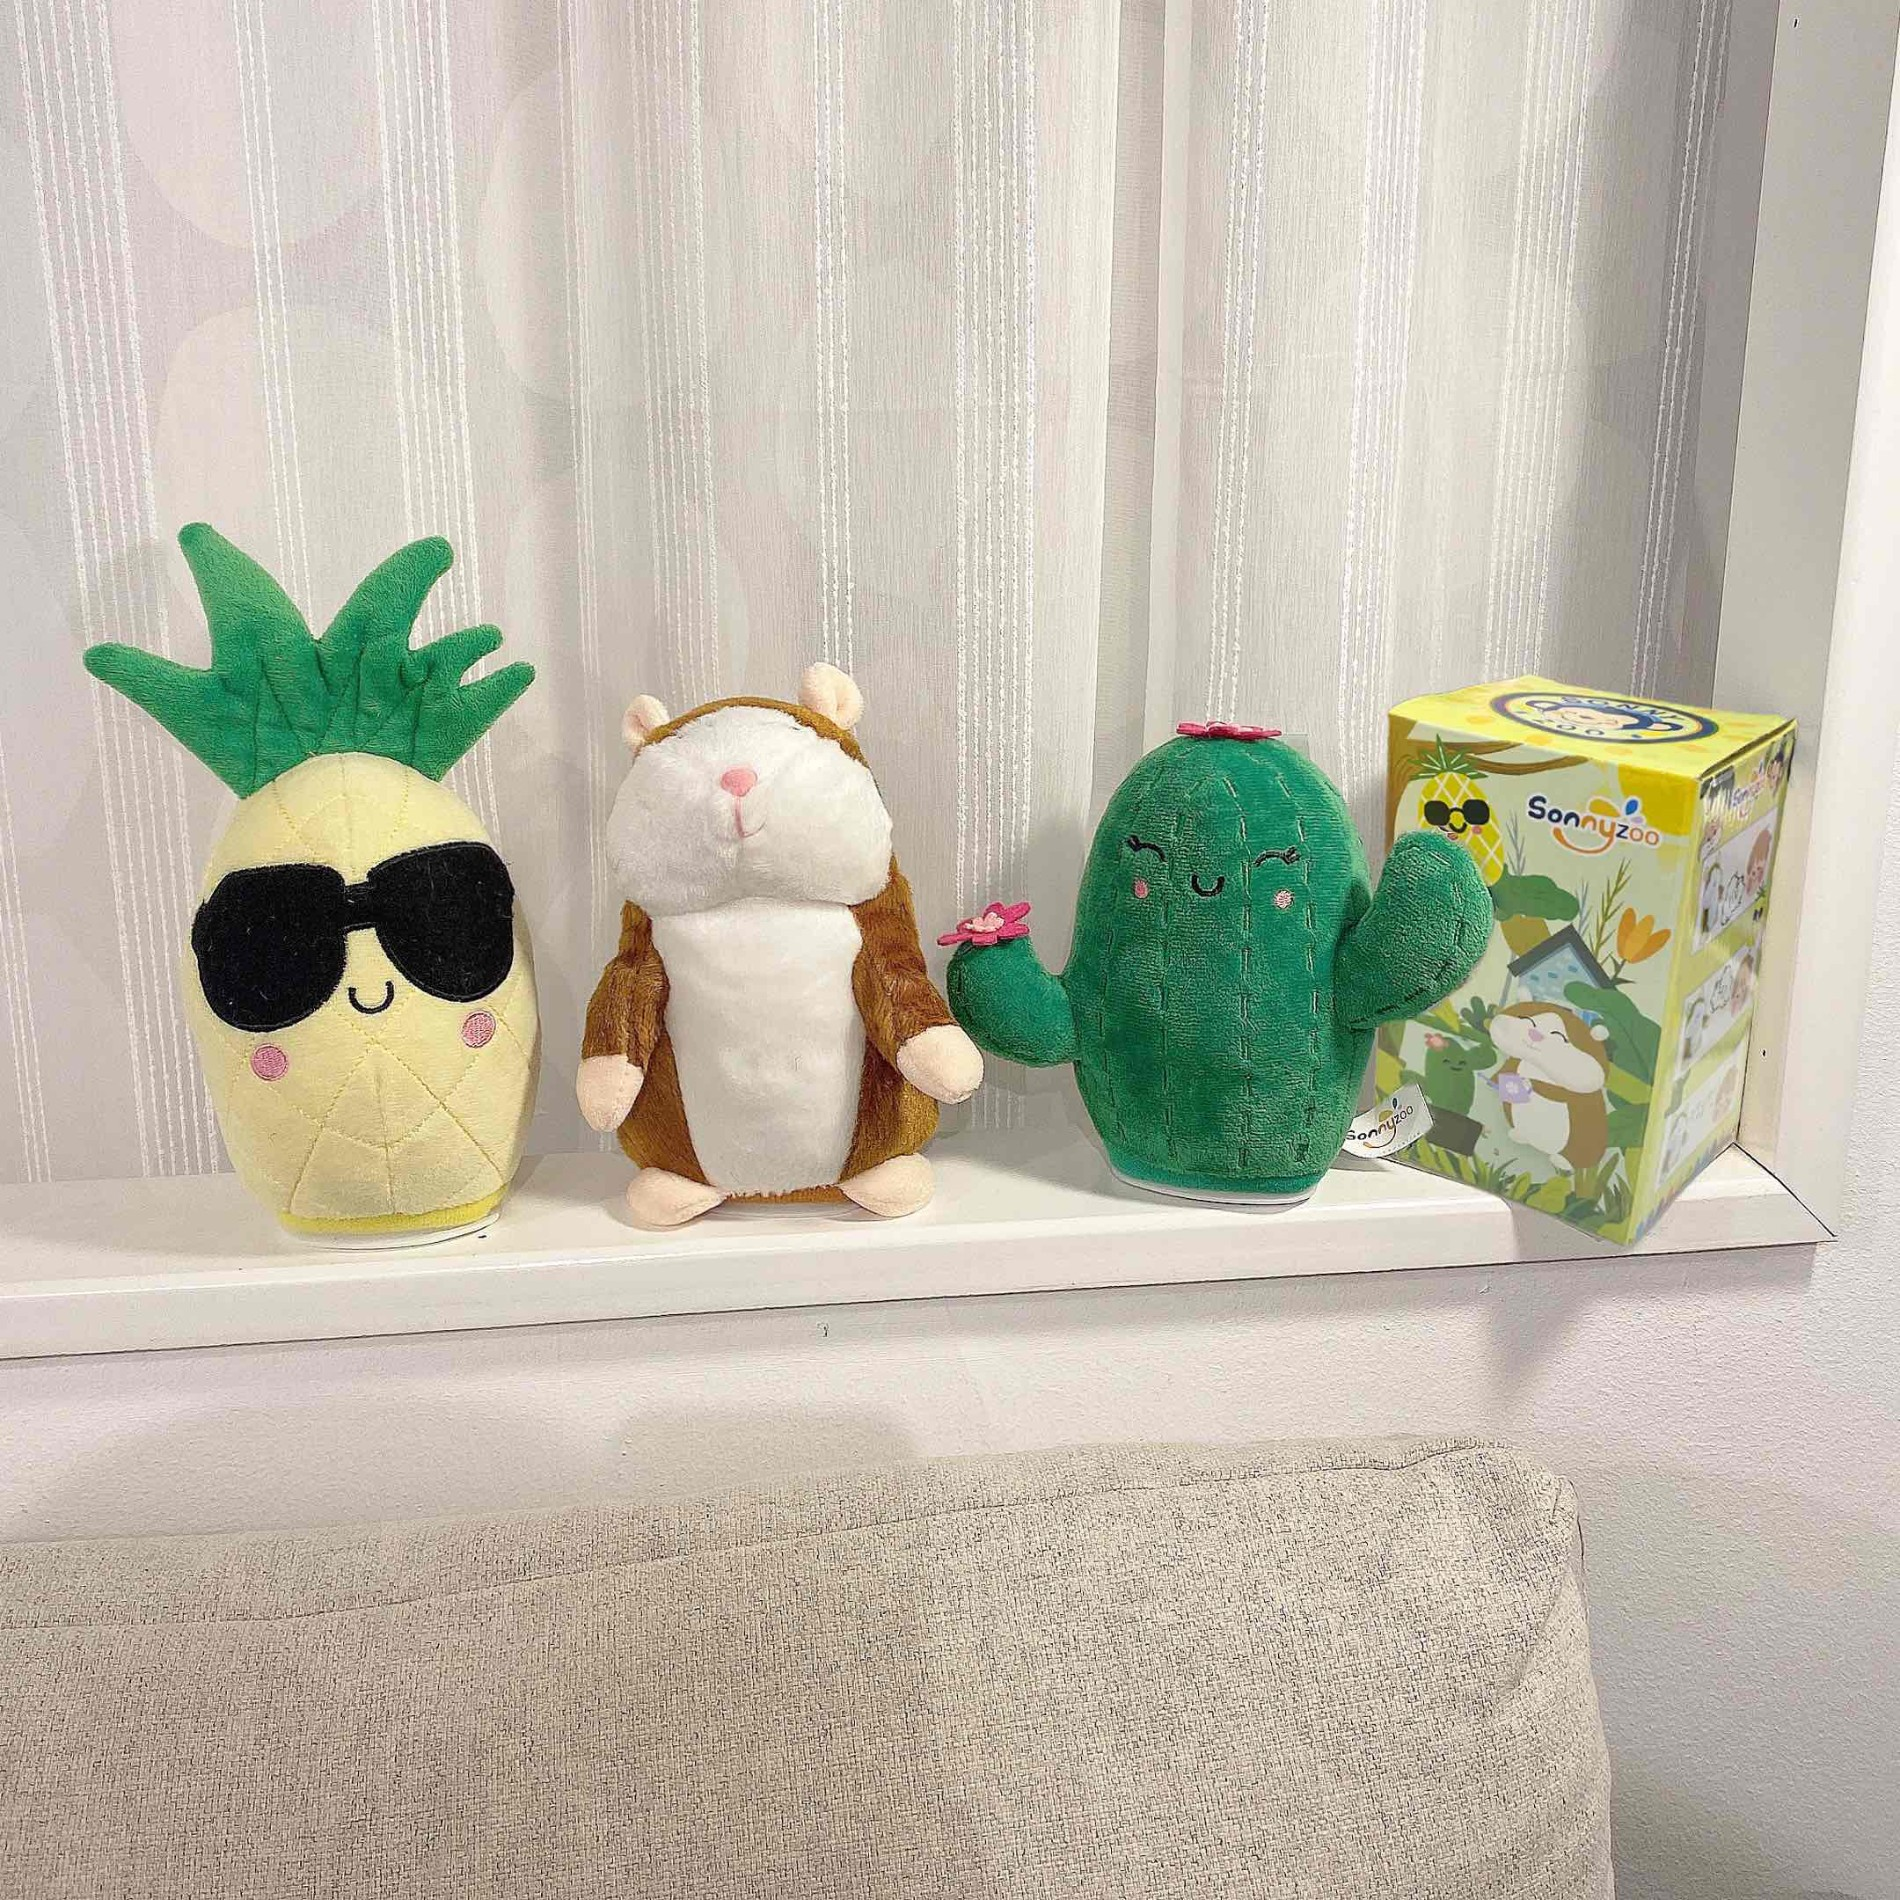 Plush Cute Cactus Speaking Toy